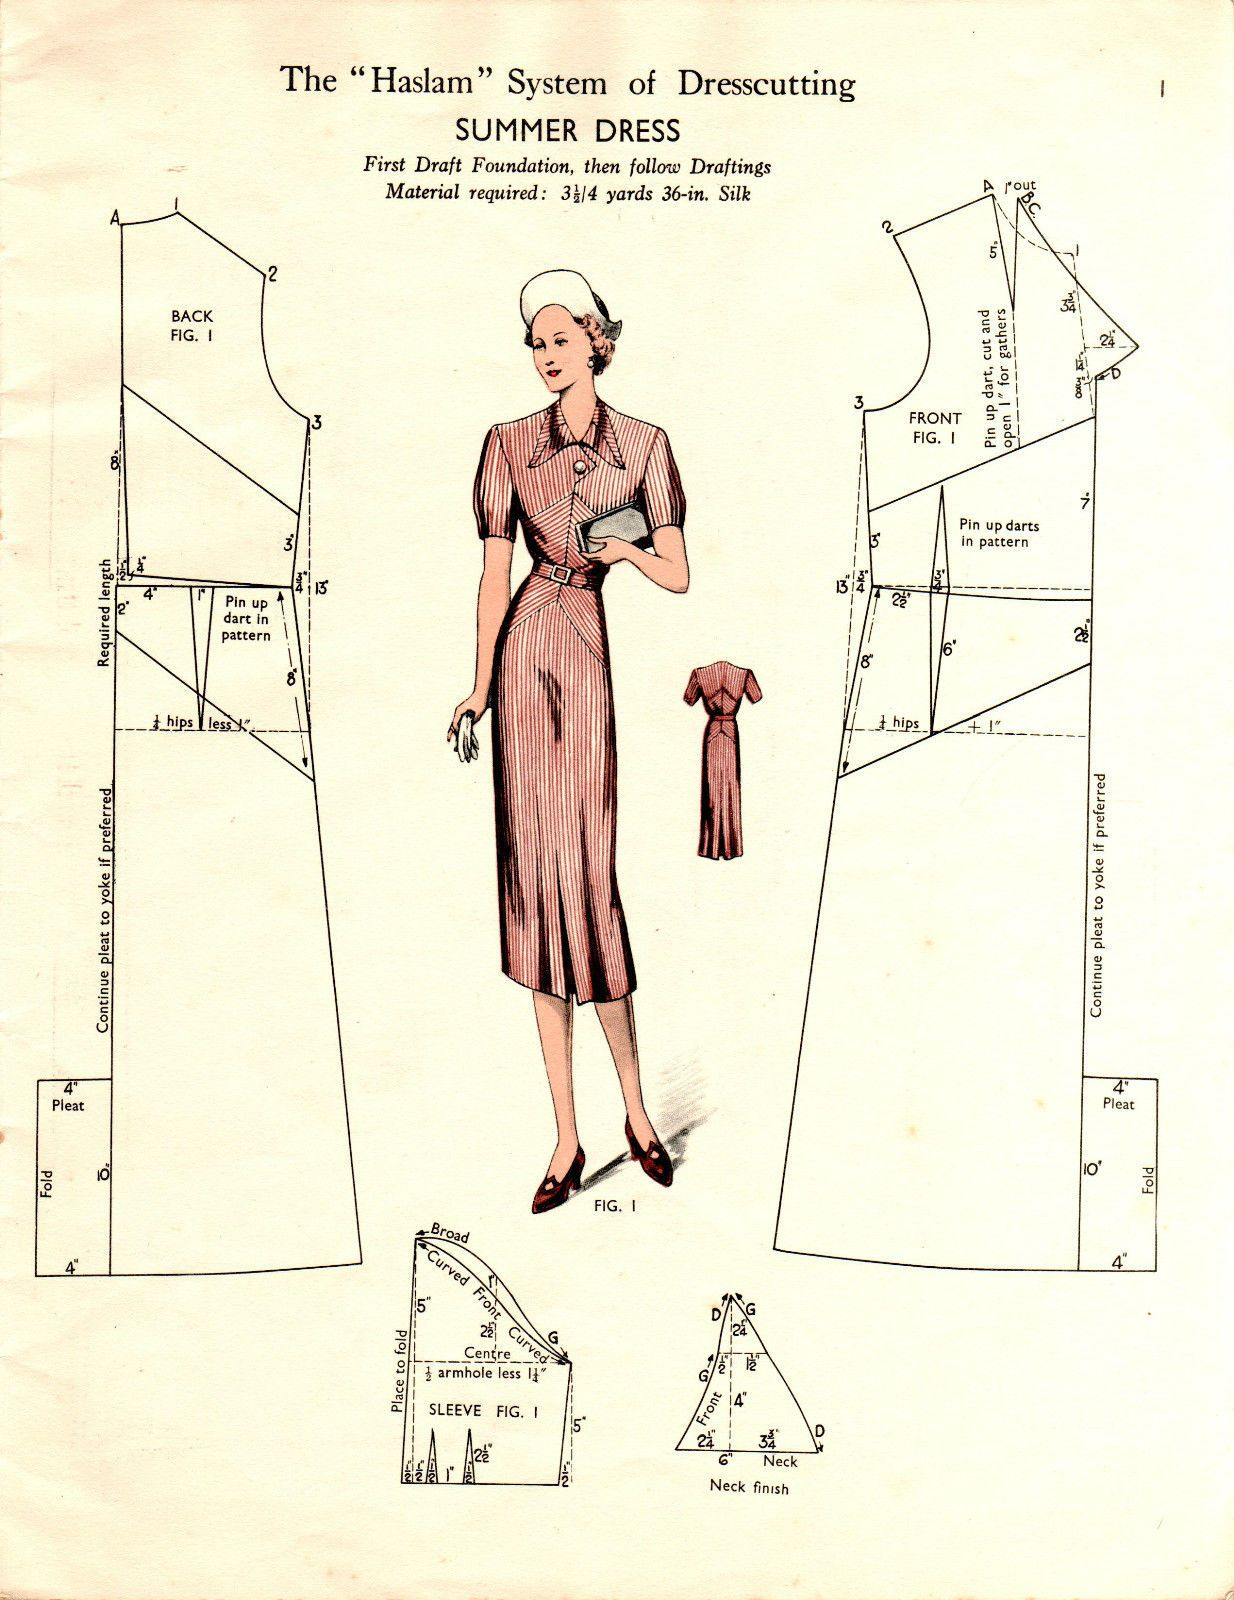 SAMPLER CD 9 Haslam Dresscutting 30s-50s Booklet Scans Fashion + ...